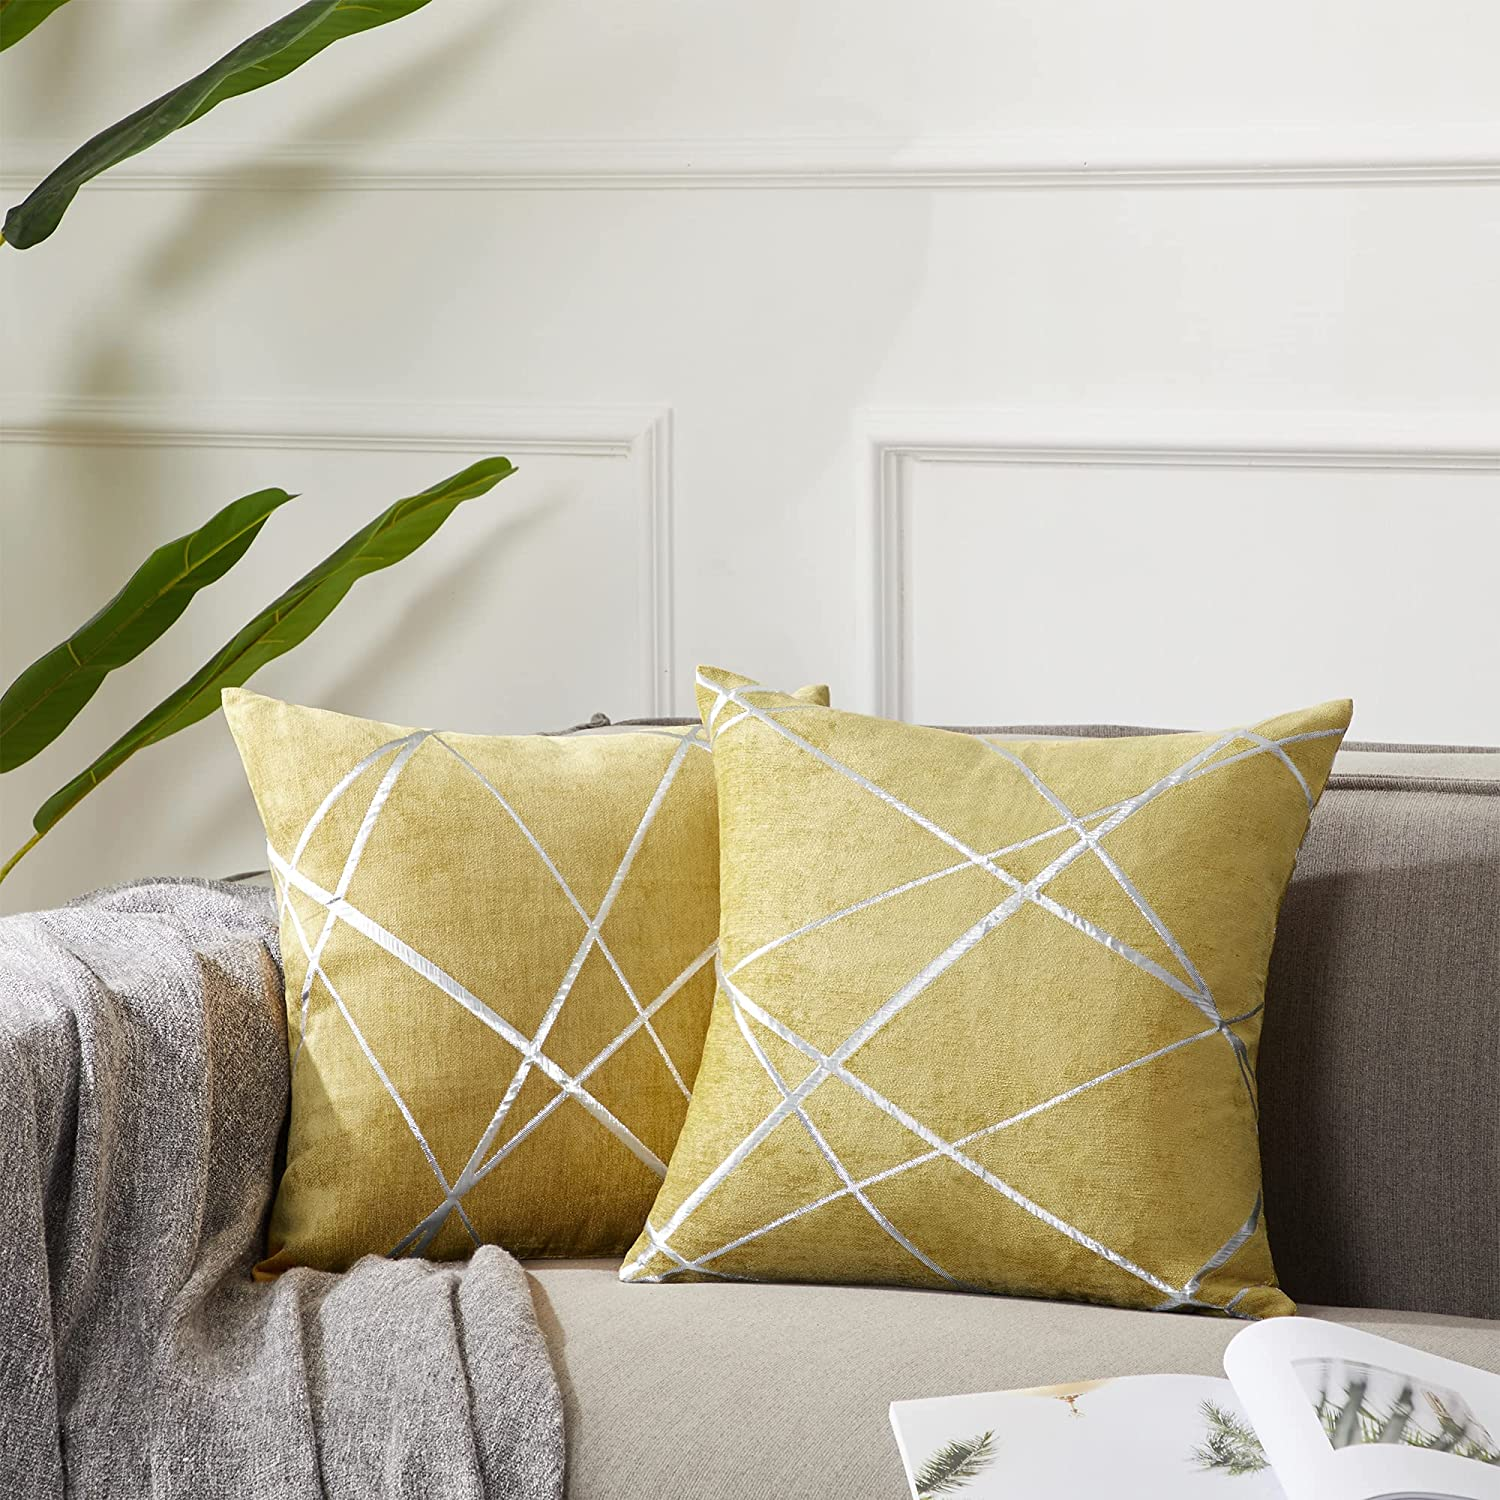 GIGIZAZA Decorative Arlington Mall Throw Pillow Covers ! Super beauty product restock quality top! Yellow x 20 Sofa Thic